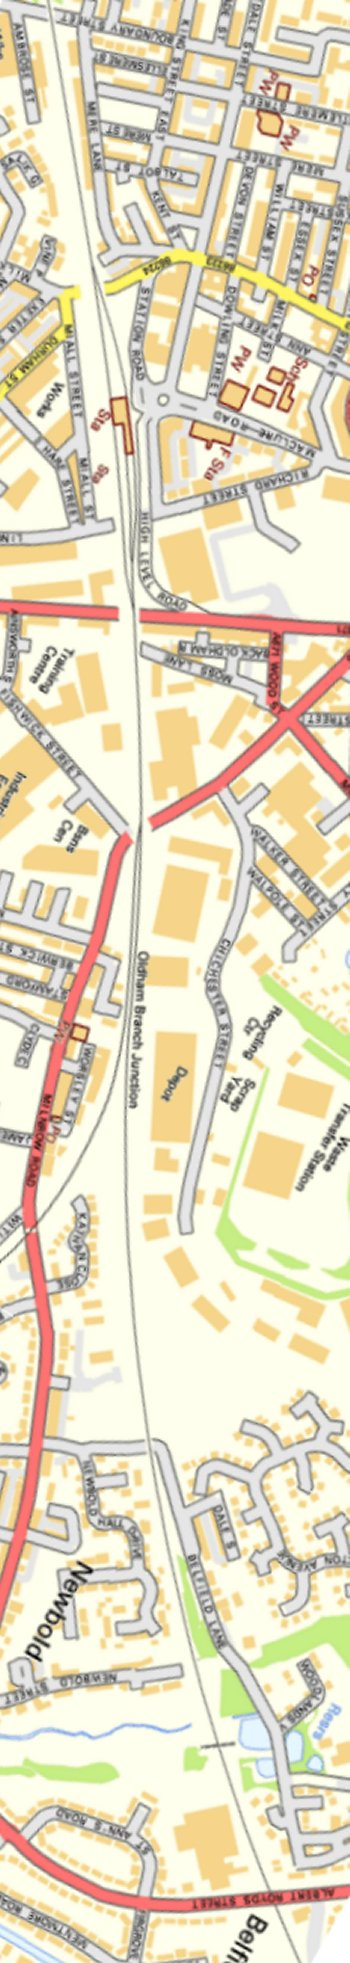 Section from Ordnance Survey OpenSource mapping 2013 showing L&YR railway line at Rochdale Station